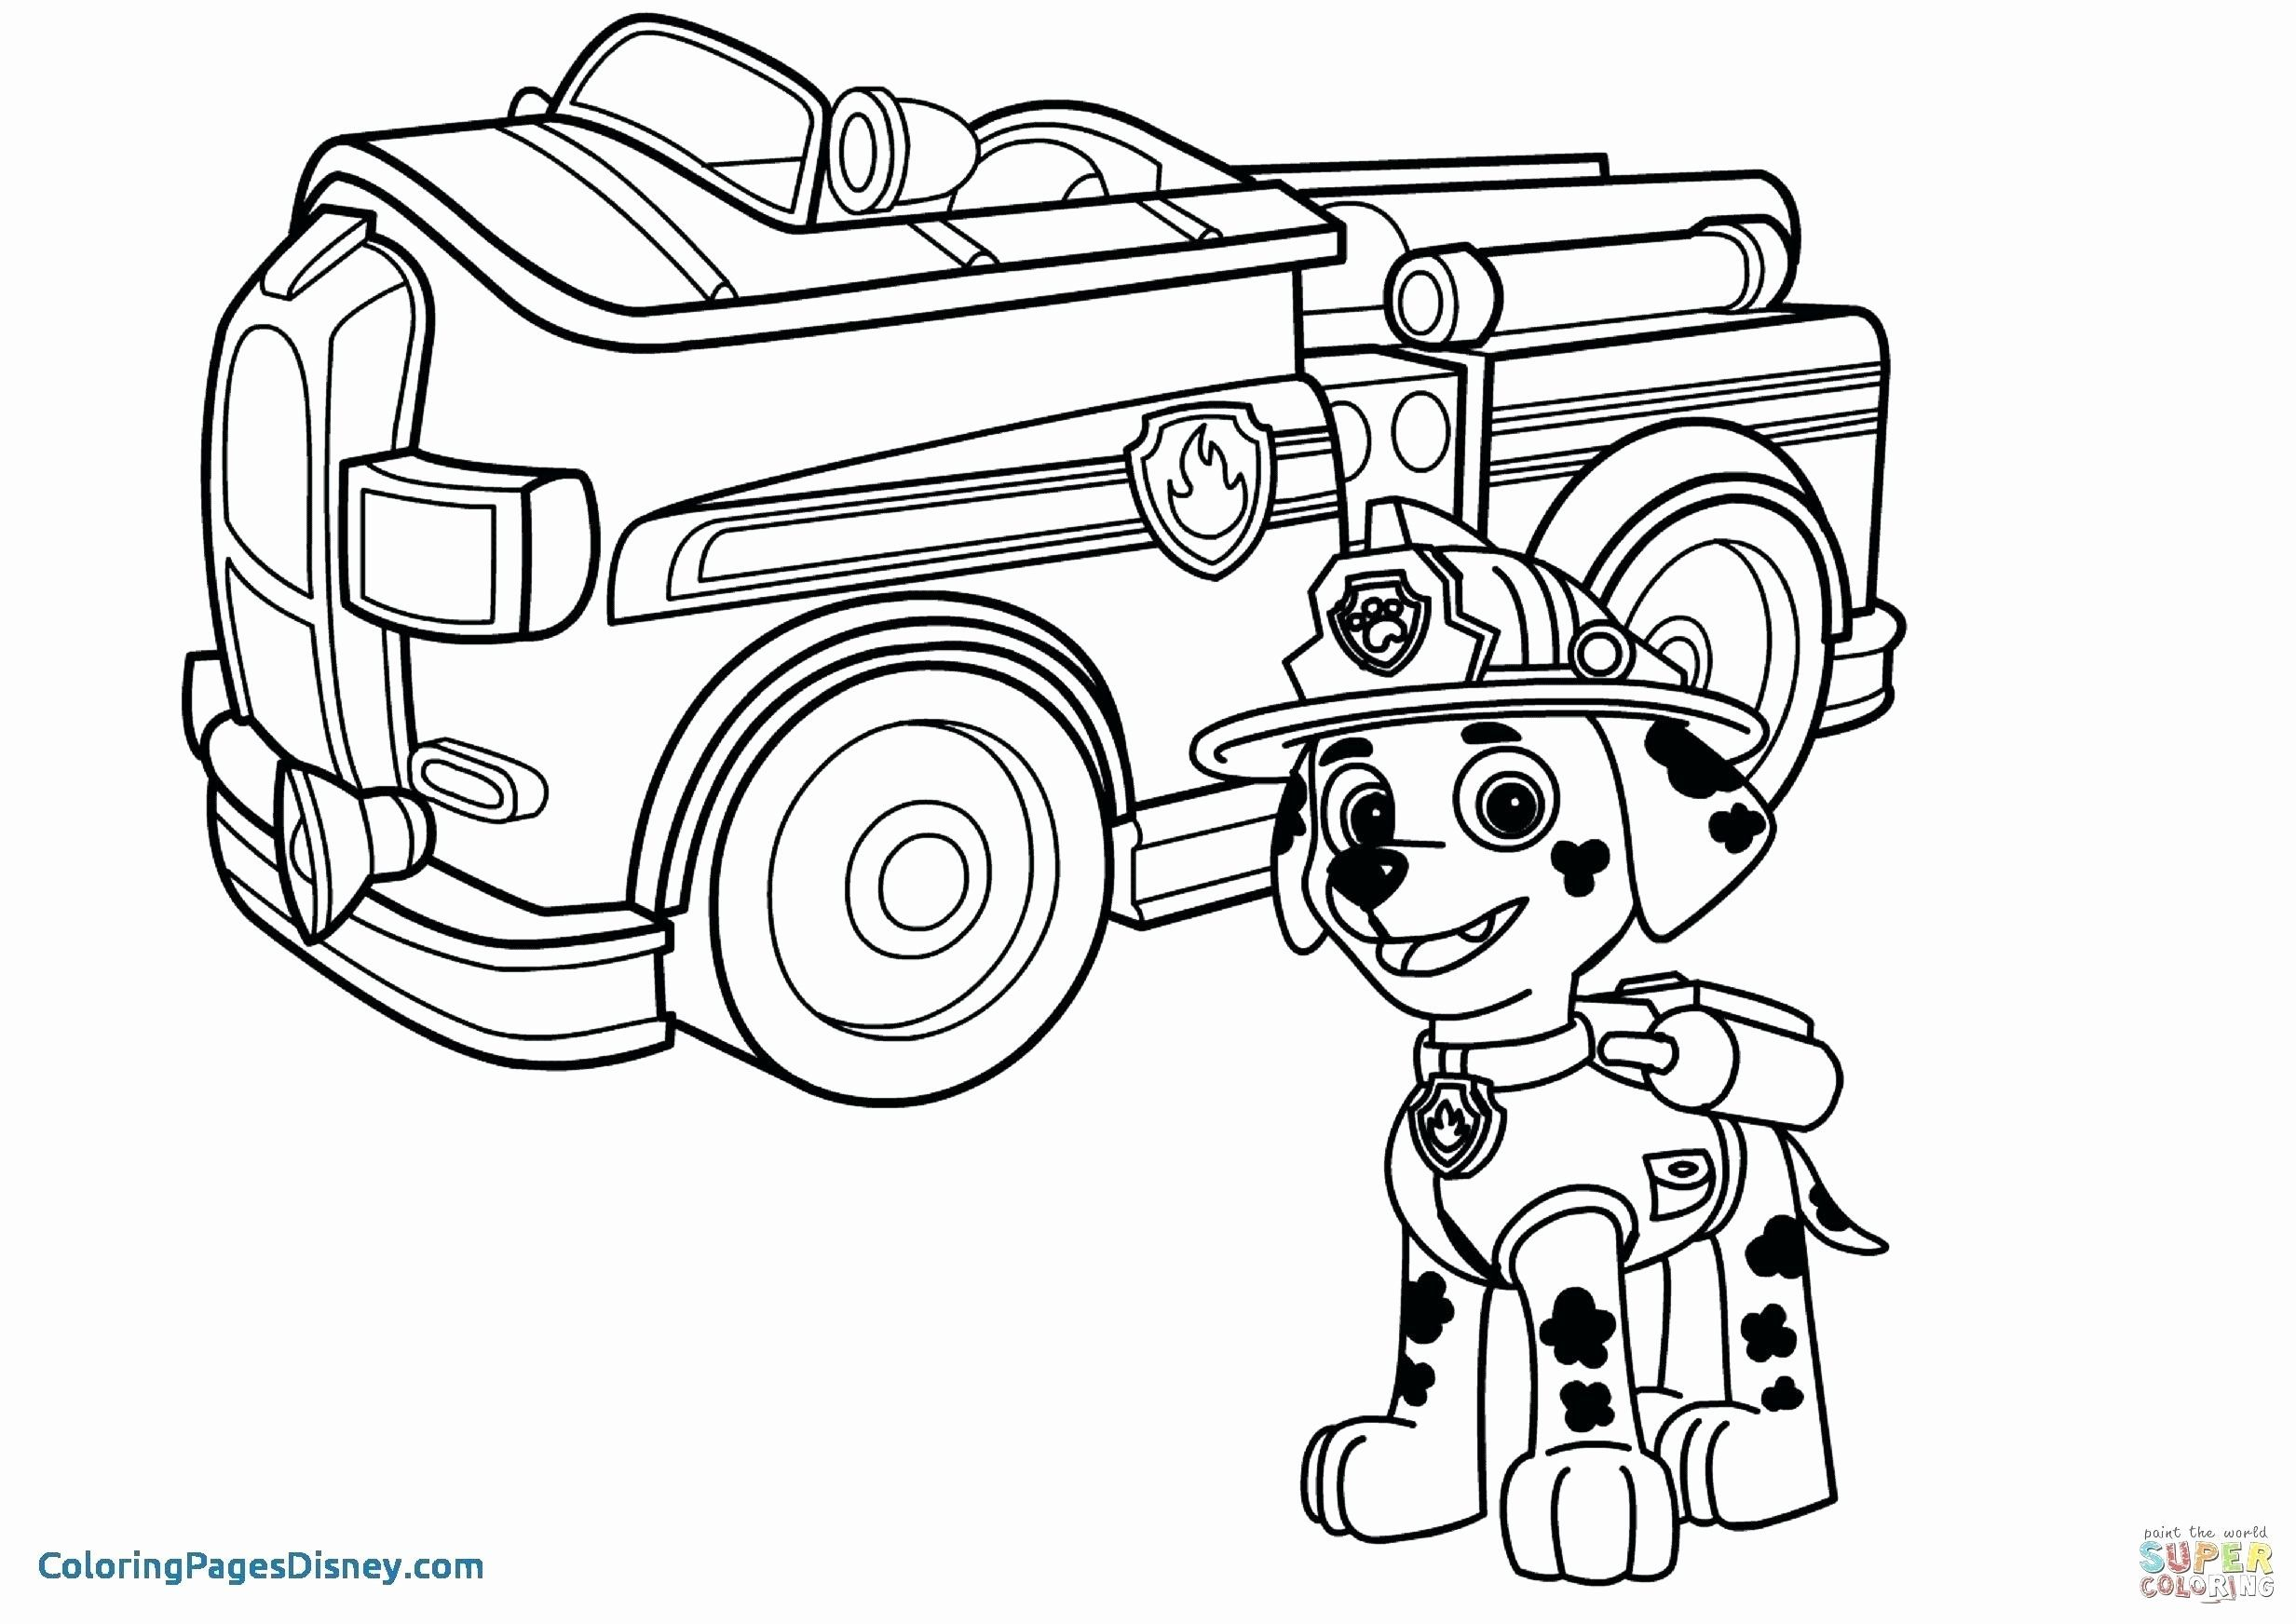 Transport Vehicles Coloring Page In 2020 Paw Patrol Coloring